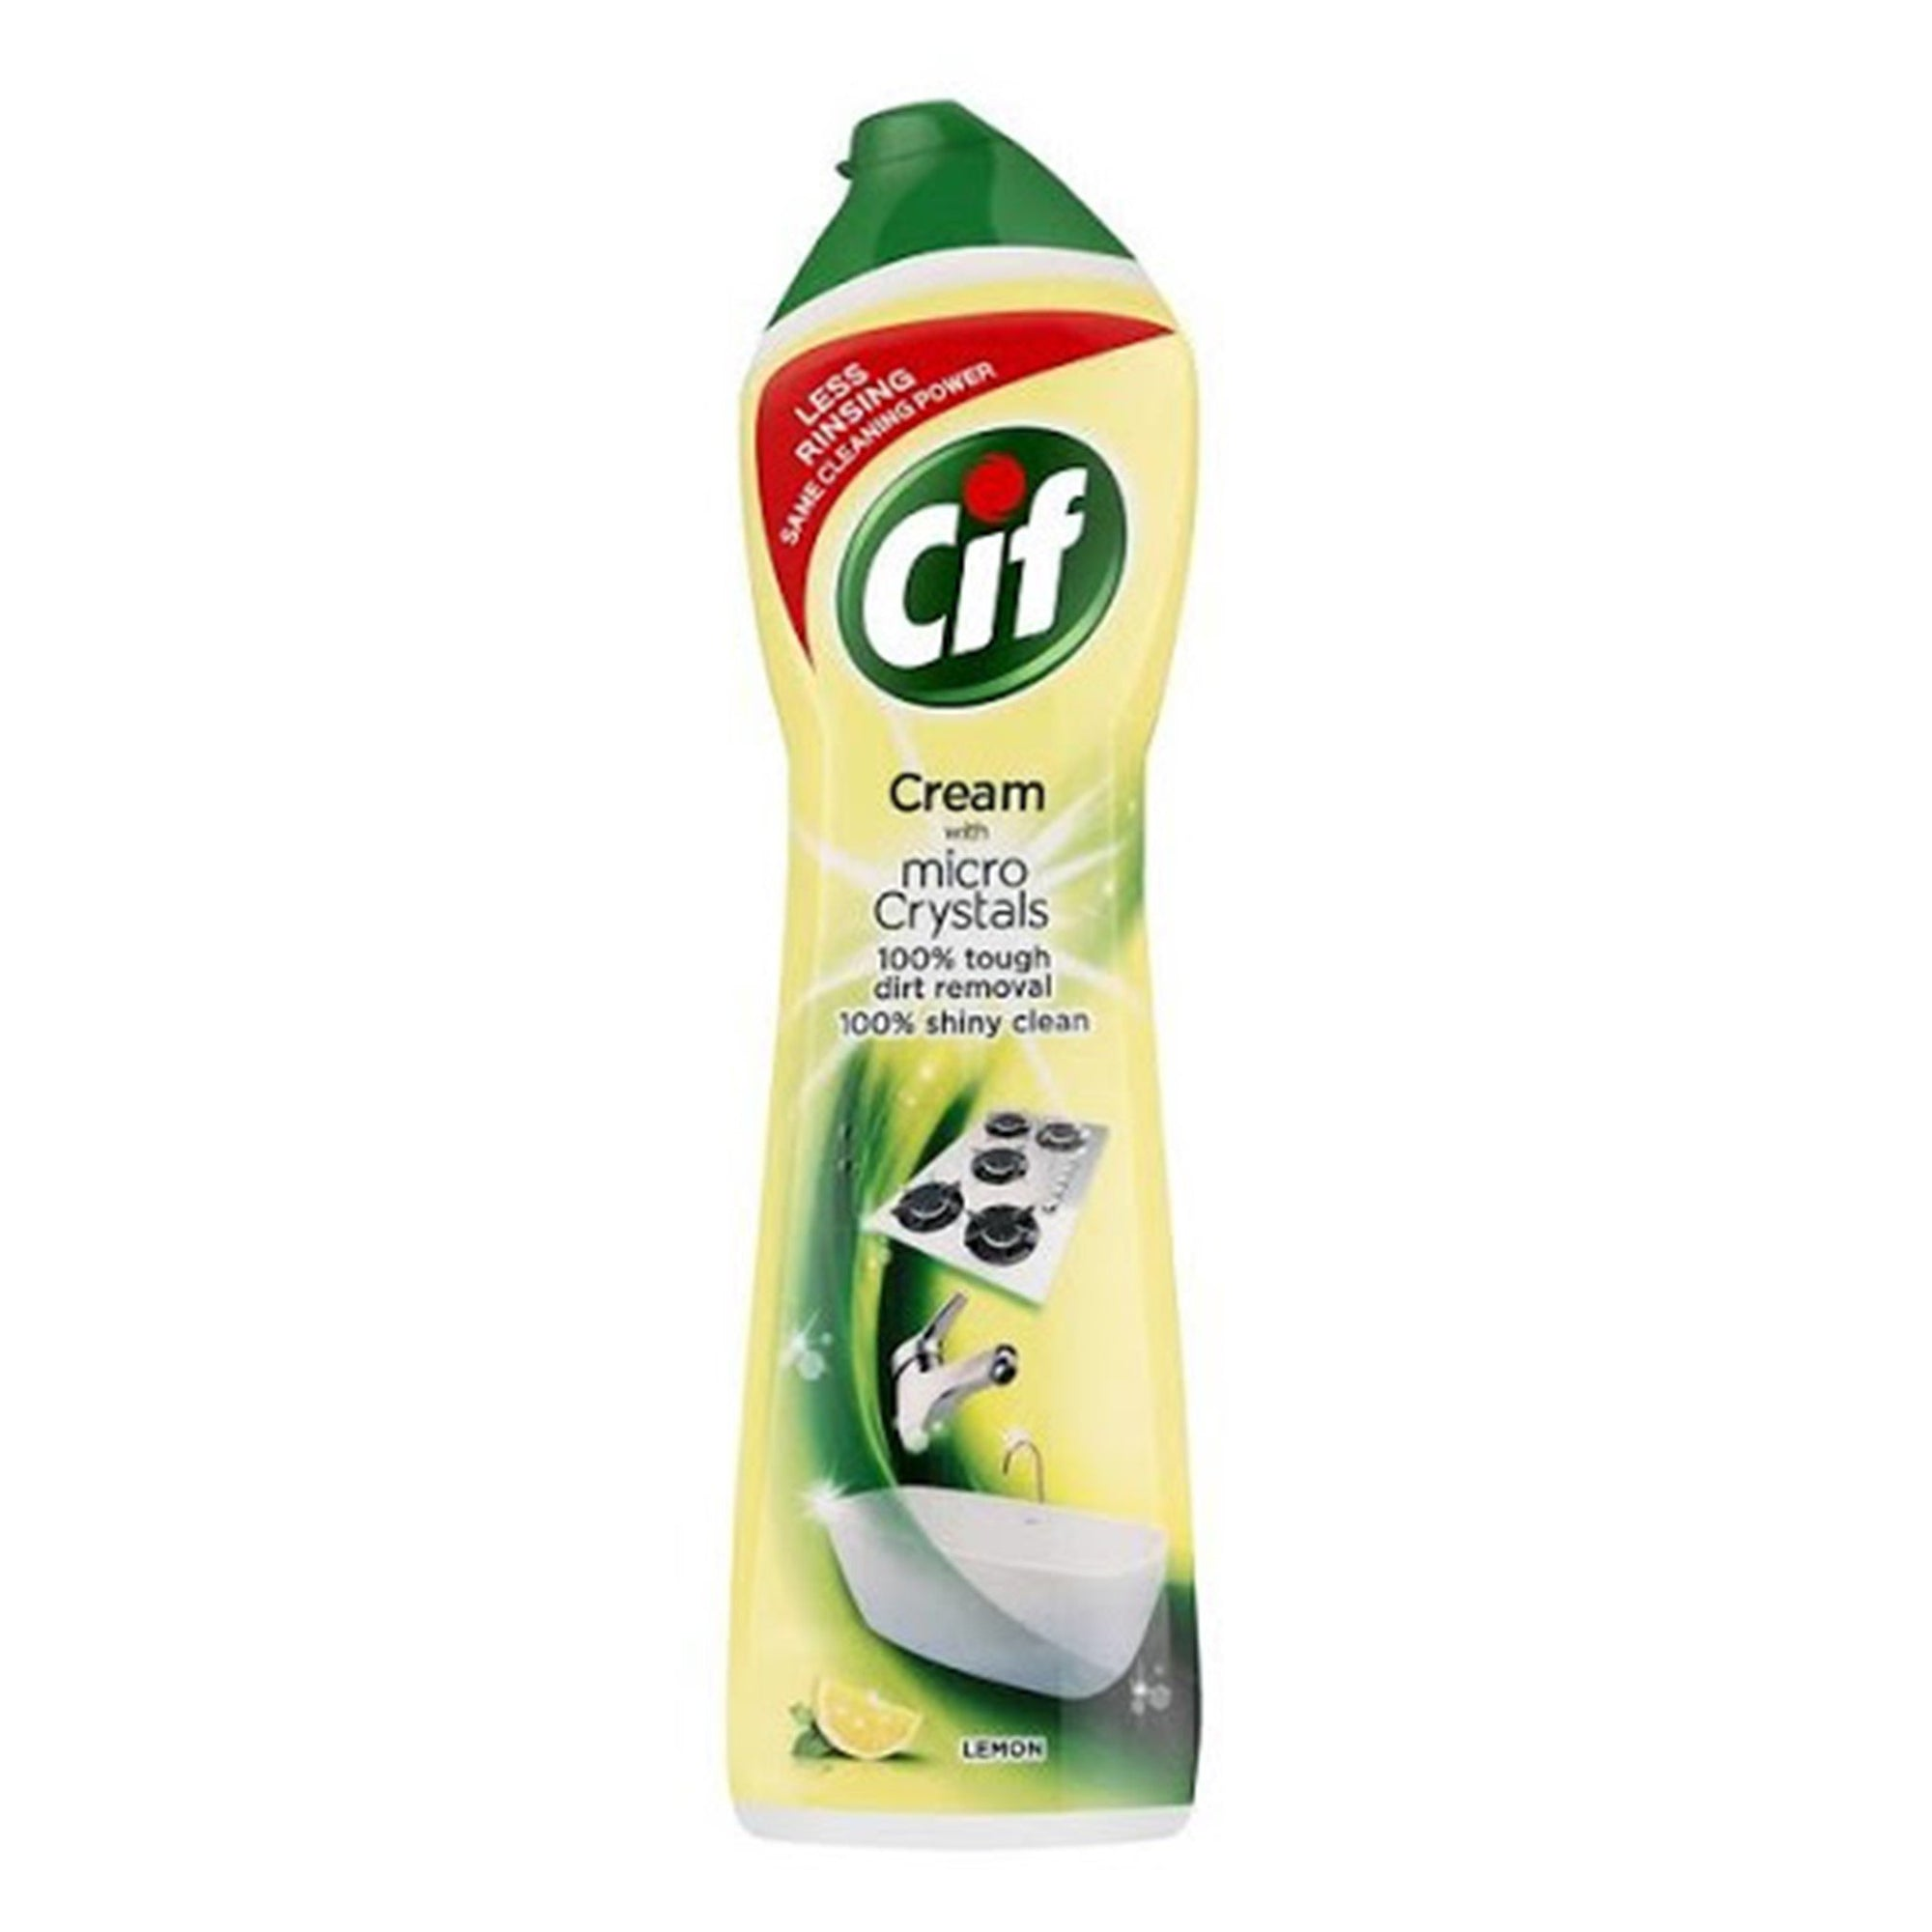 Cif Cream Cleaner Lemon 500ml